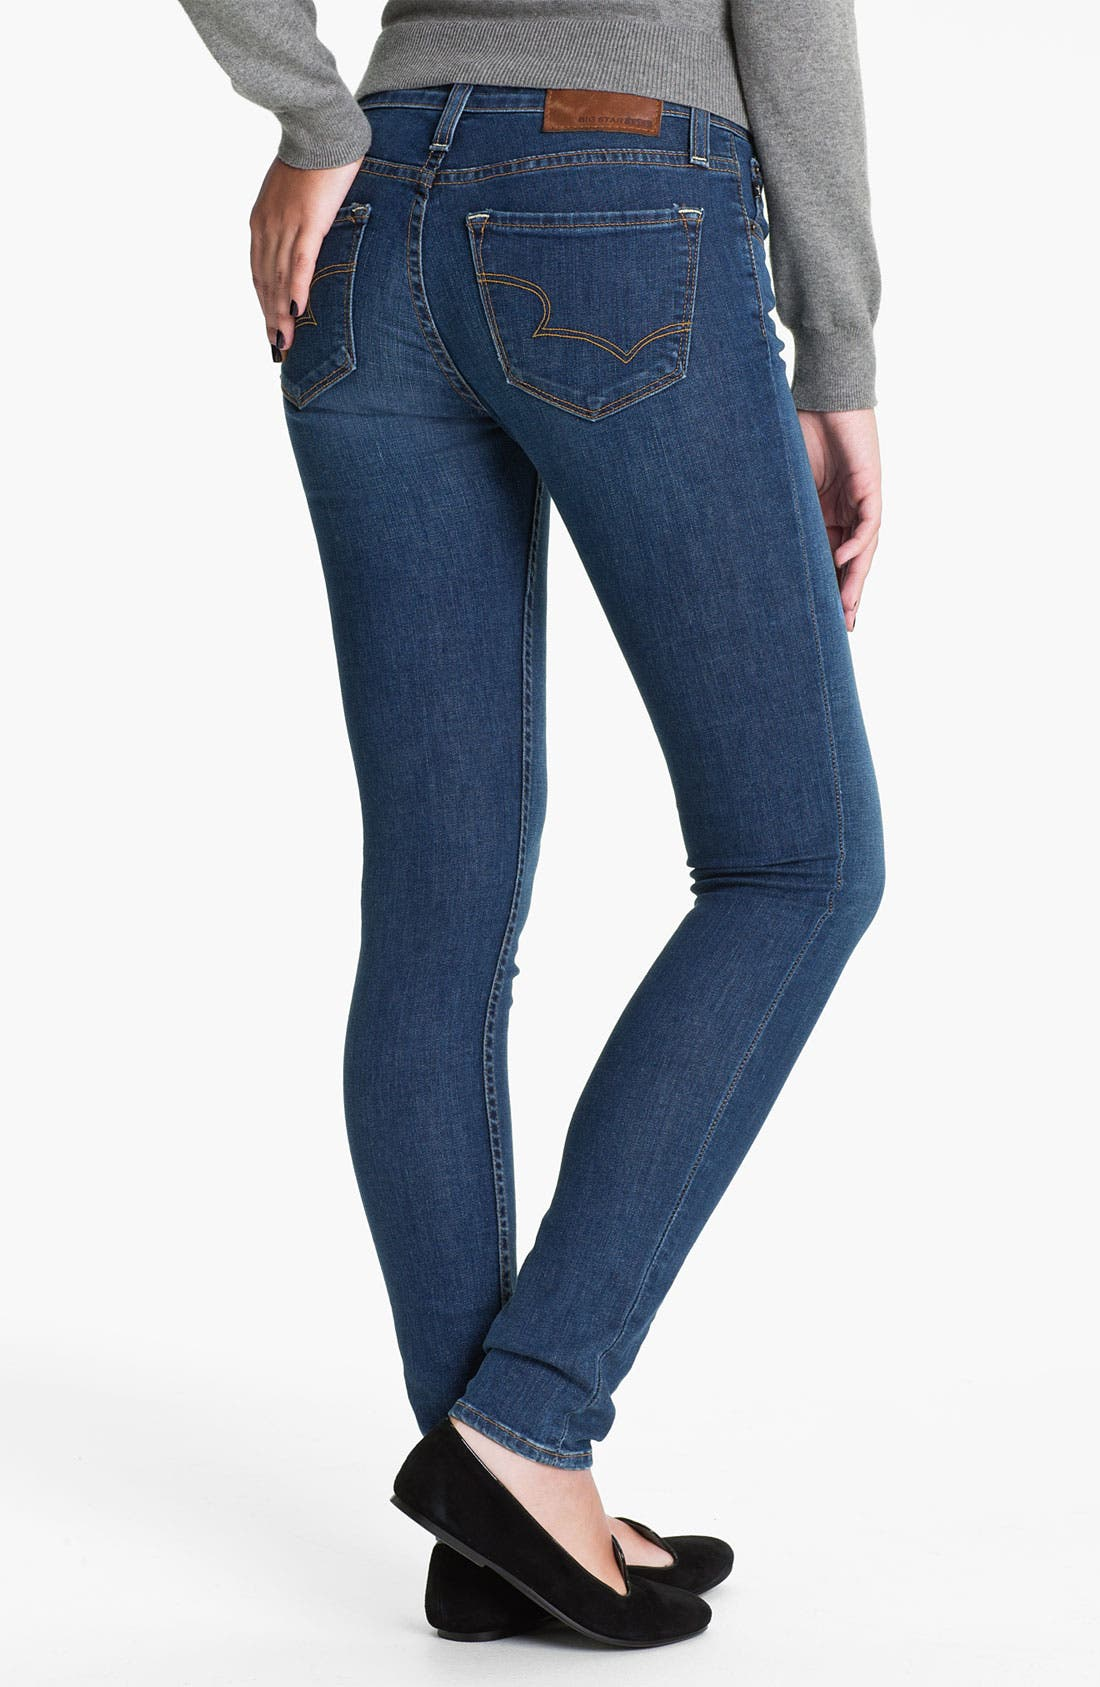 Alternate Image 1 Selected - Big Star 'Alex' Skinny Jeans (Olympic Light) (Juniors)